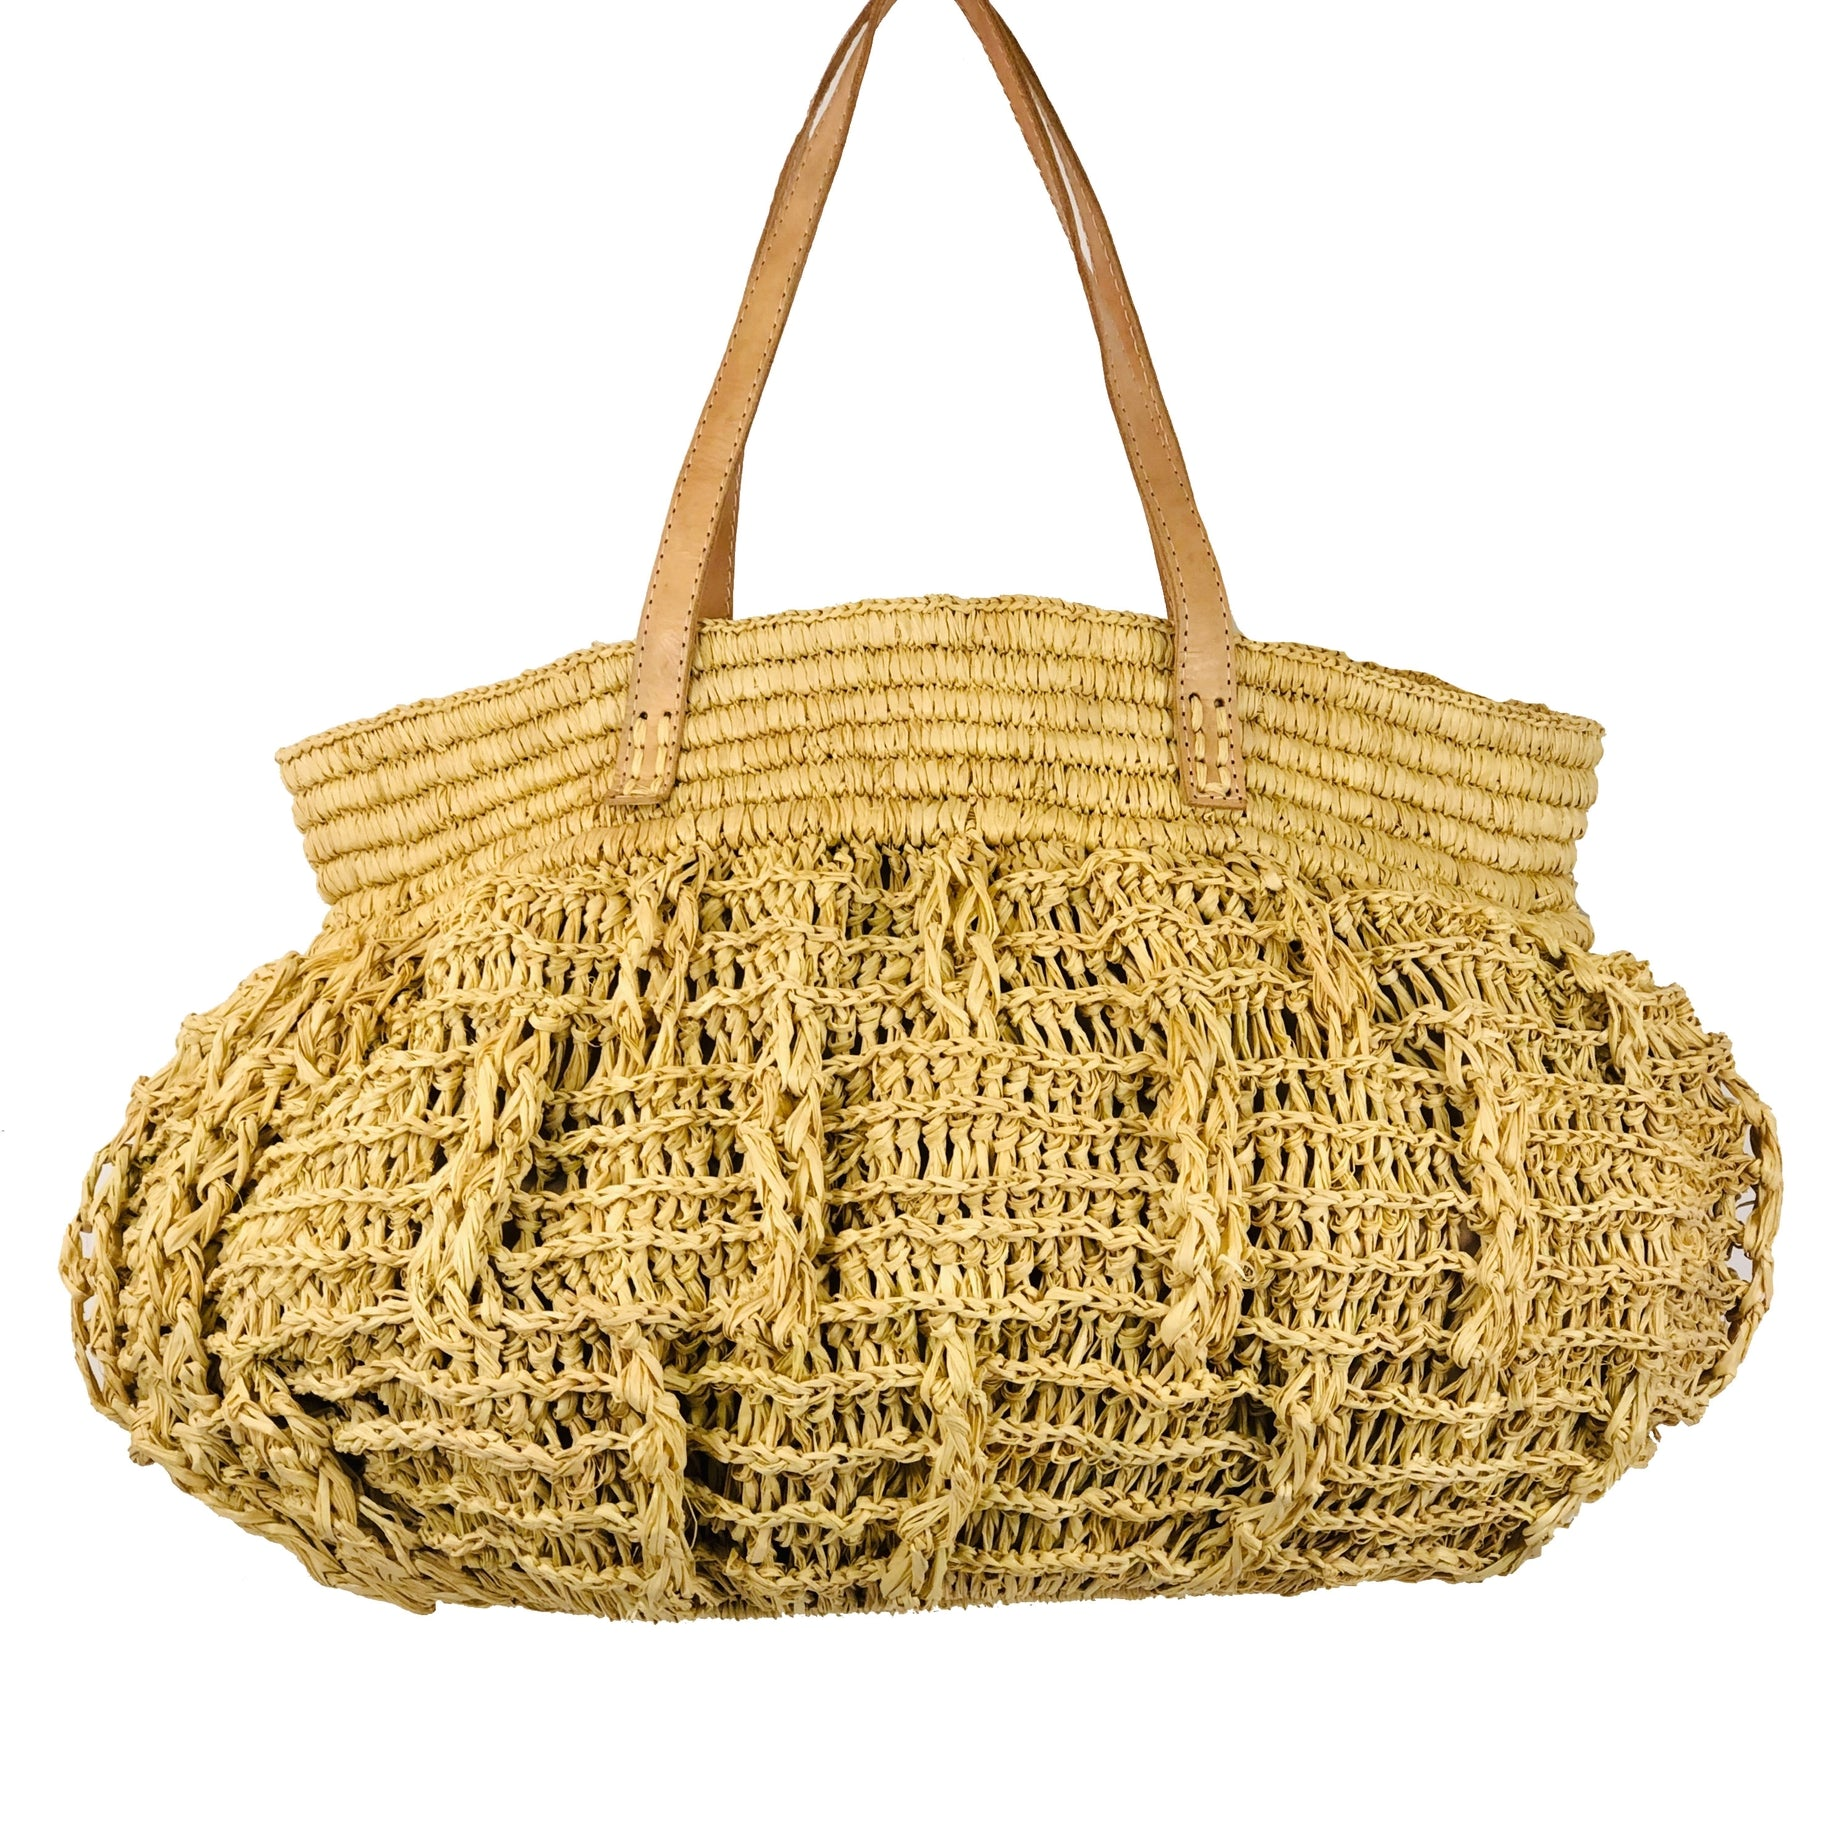 Bella Crochet Straw Handbag - Natural